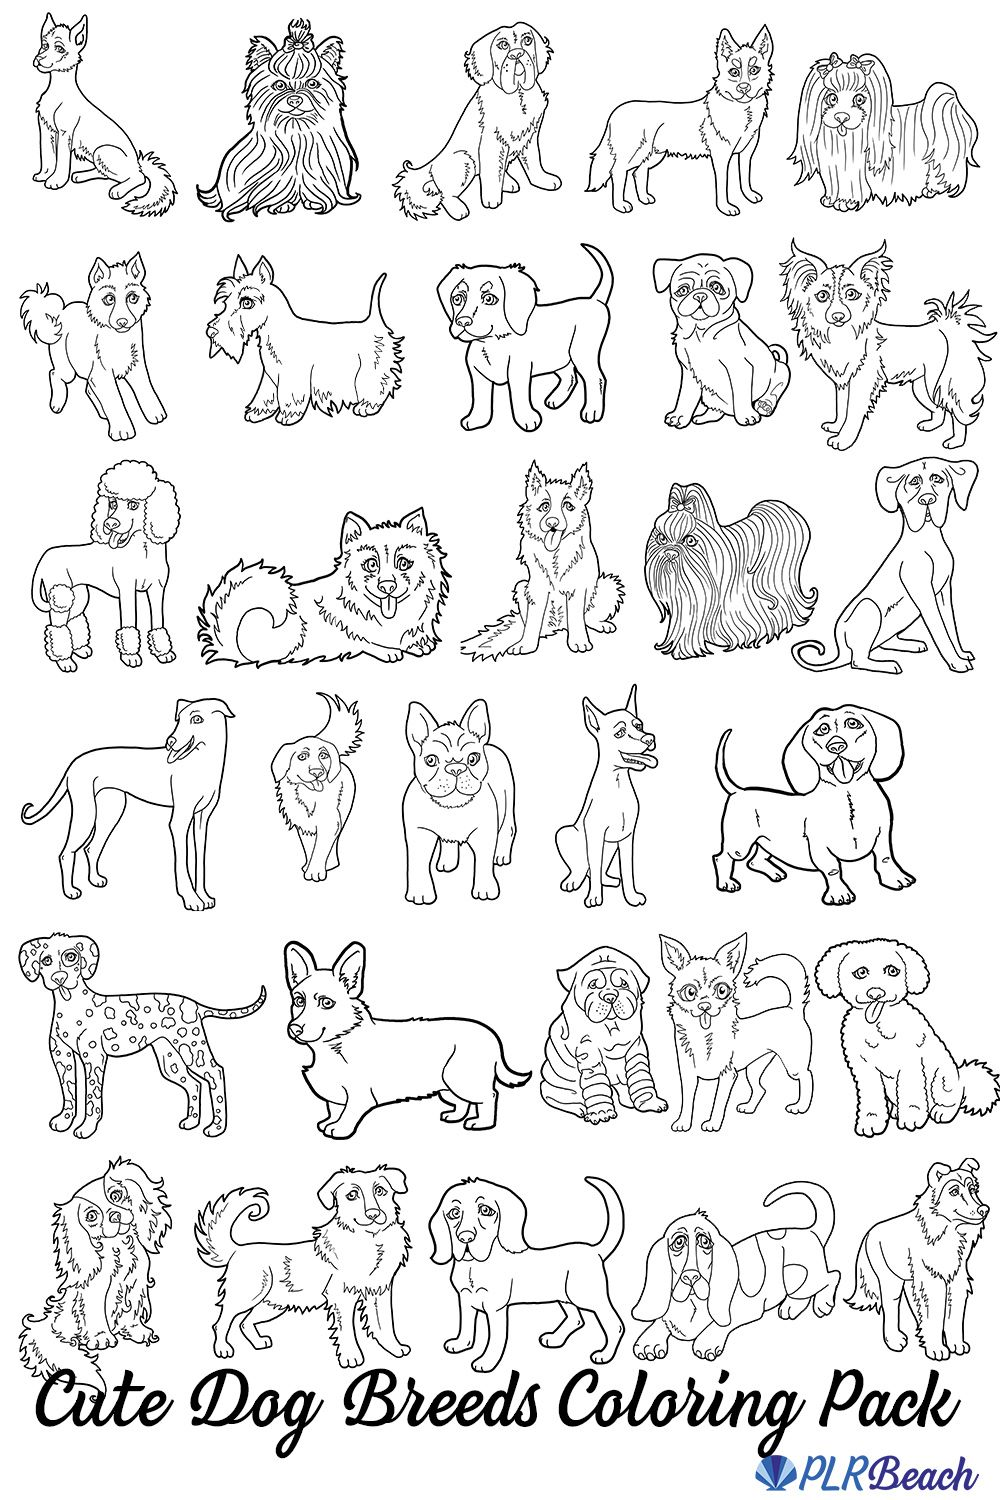 30 Dog Breeds Coloring Image Pack For Commercial Use Dog Coloring Book Puppy Coloring Pages Dog Coloring Page